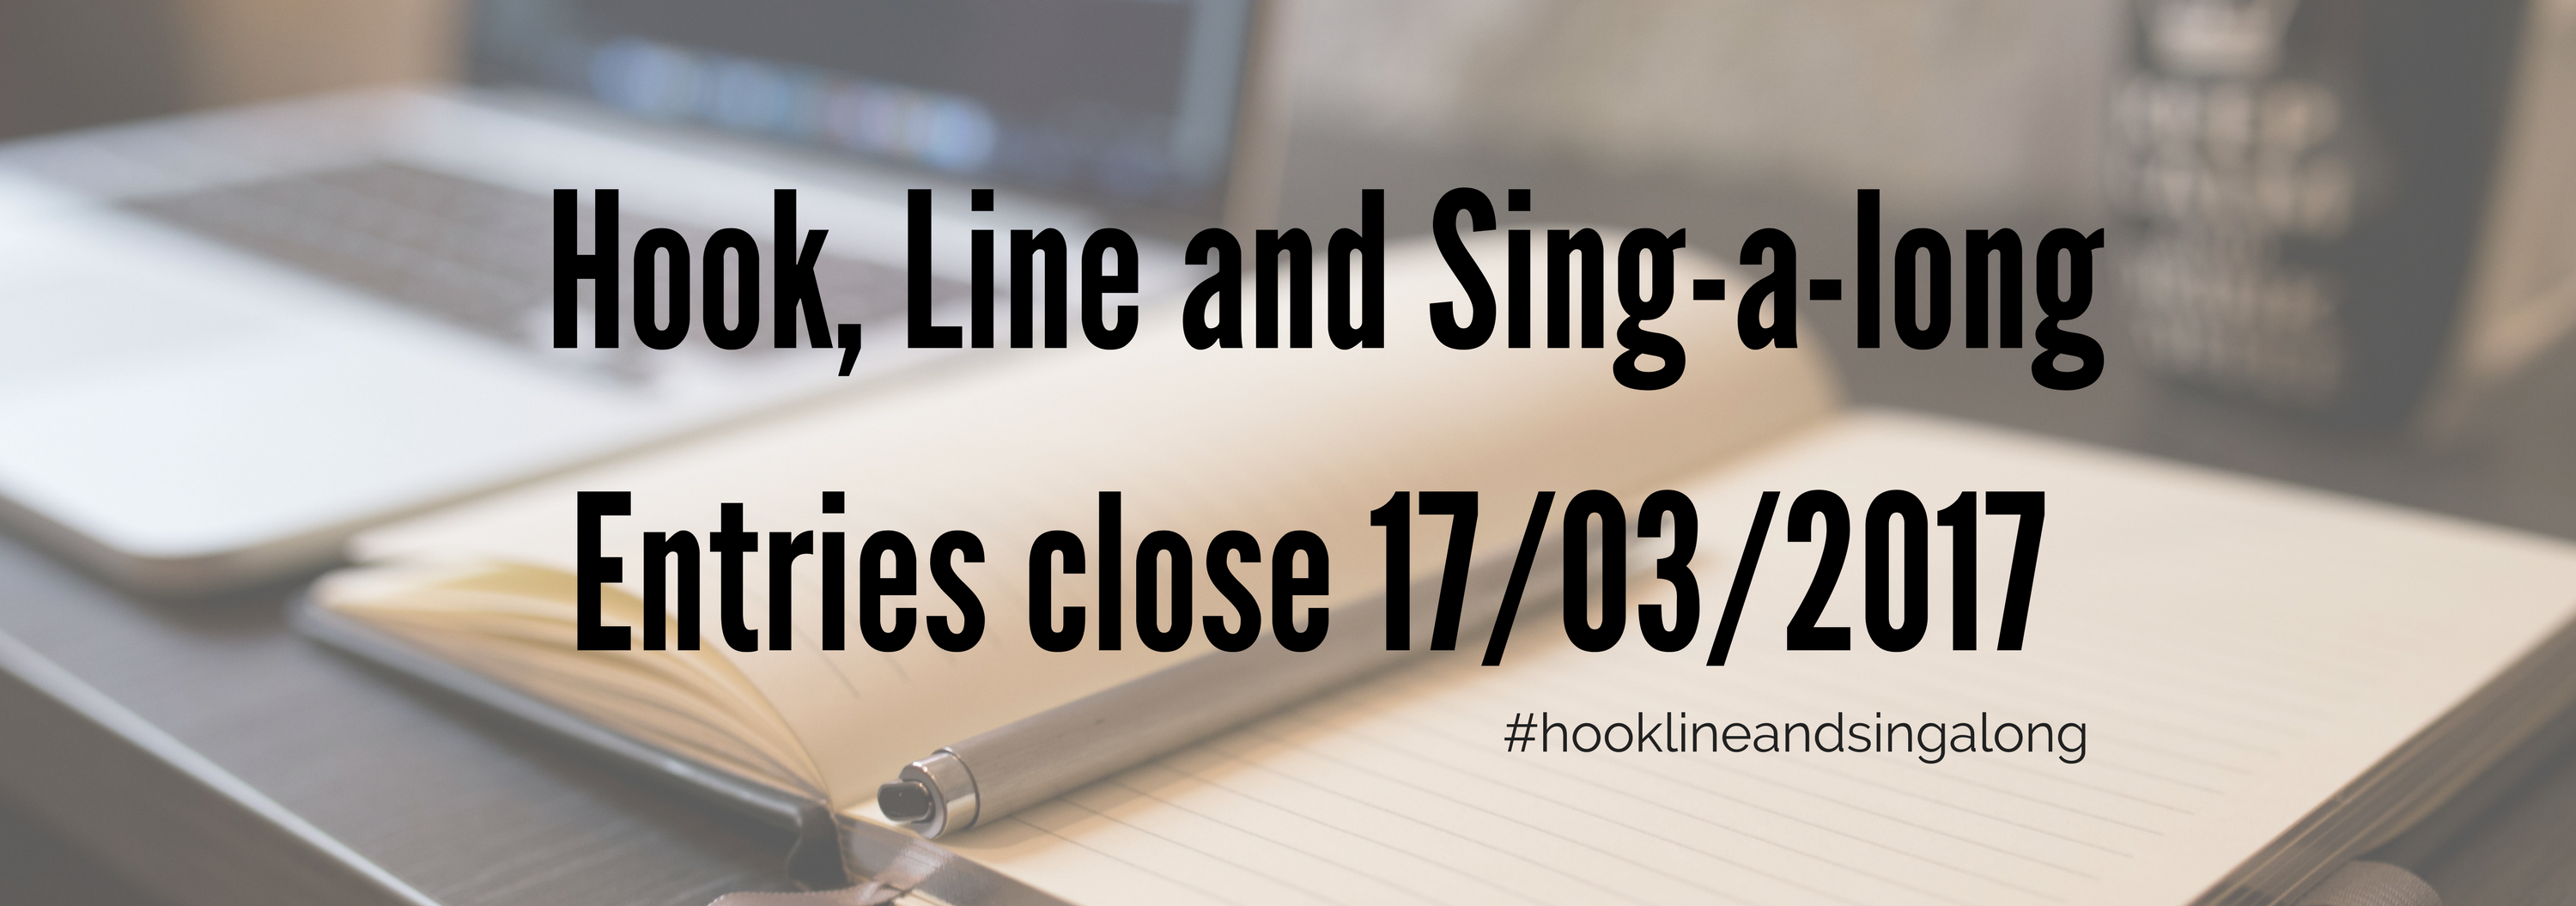 Hook, Line and Sing-a-longEntries close 17032017